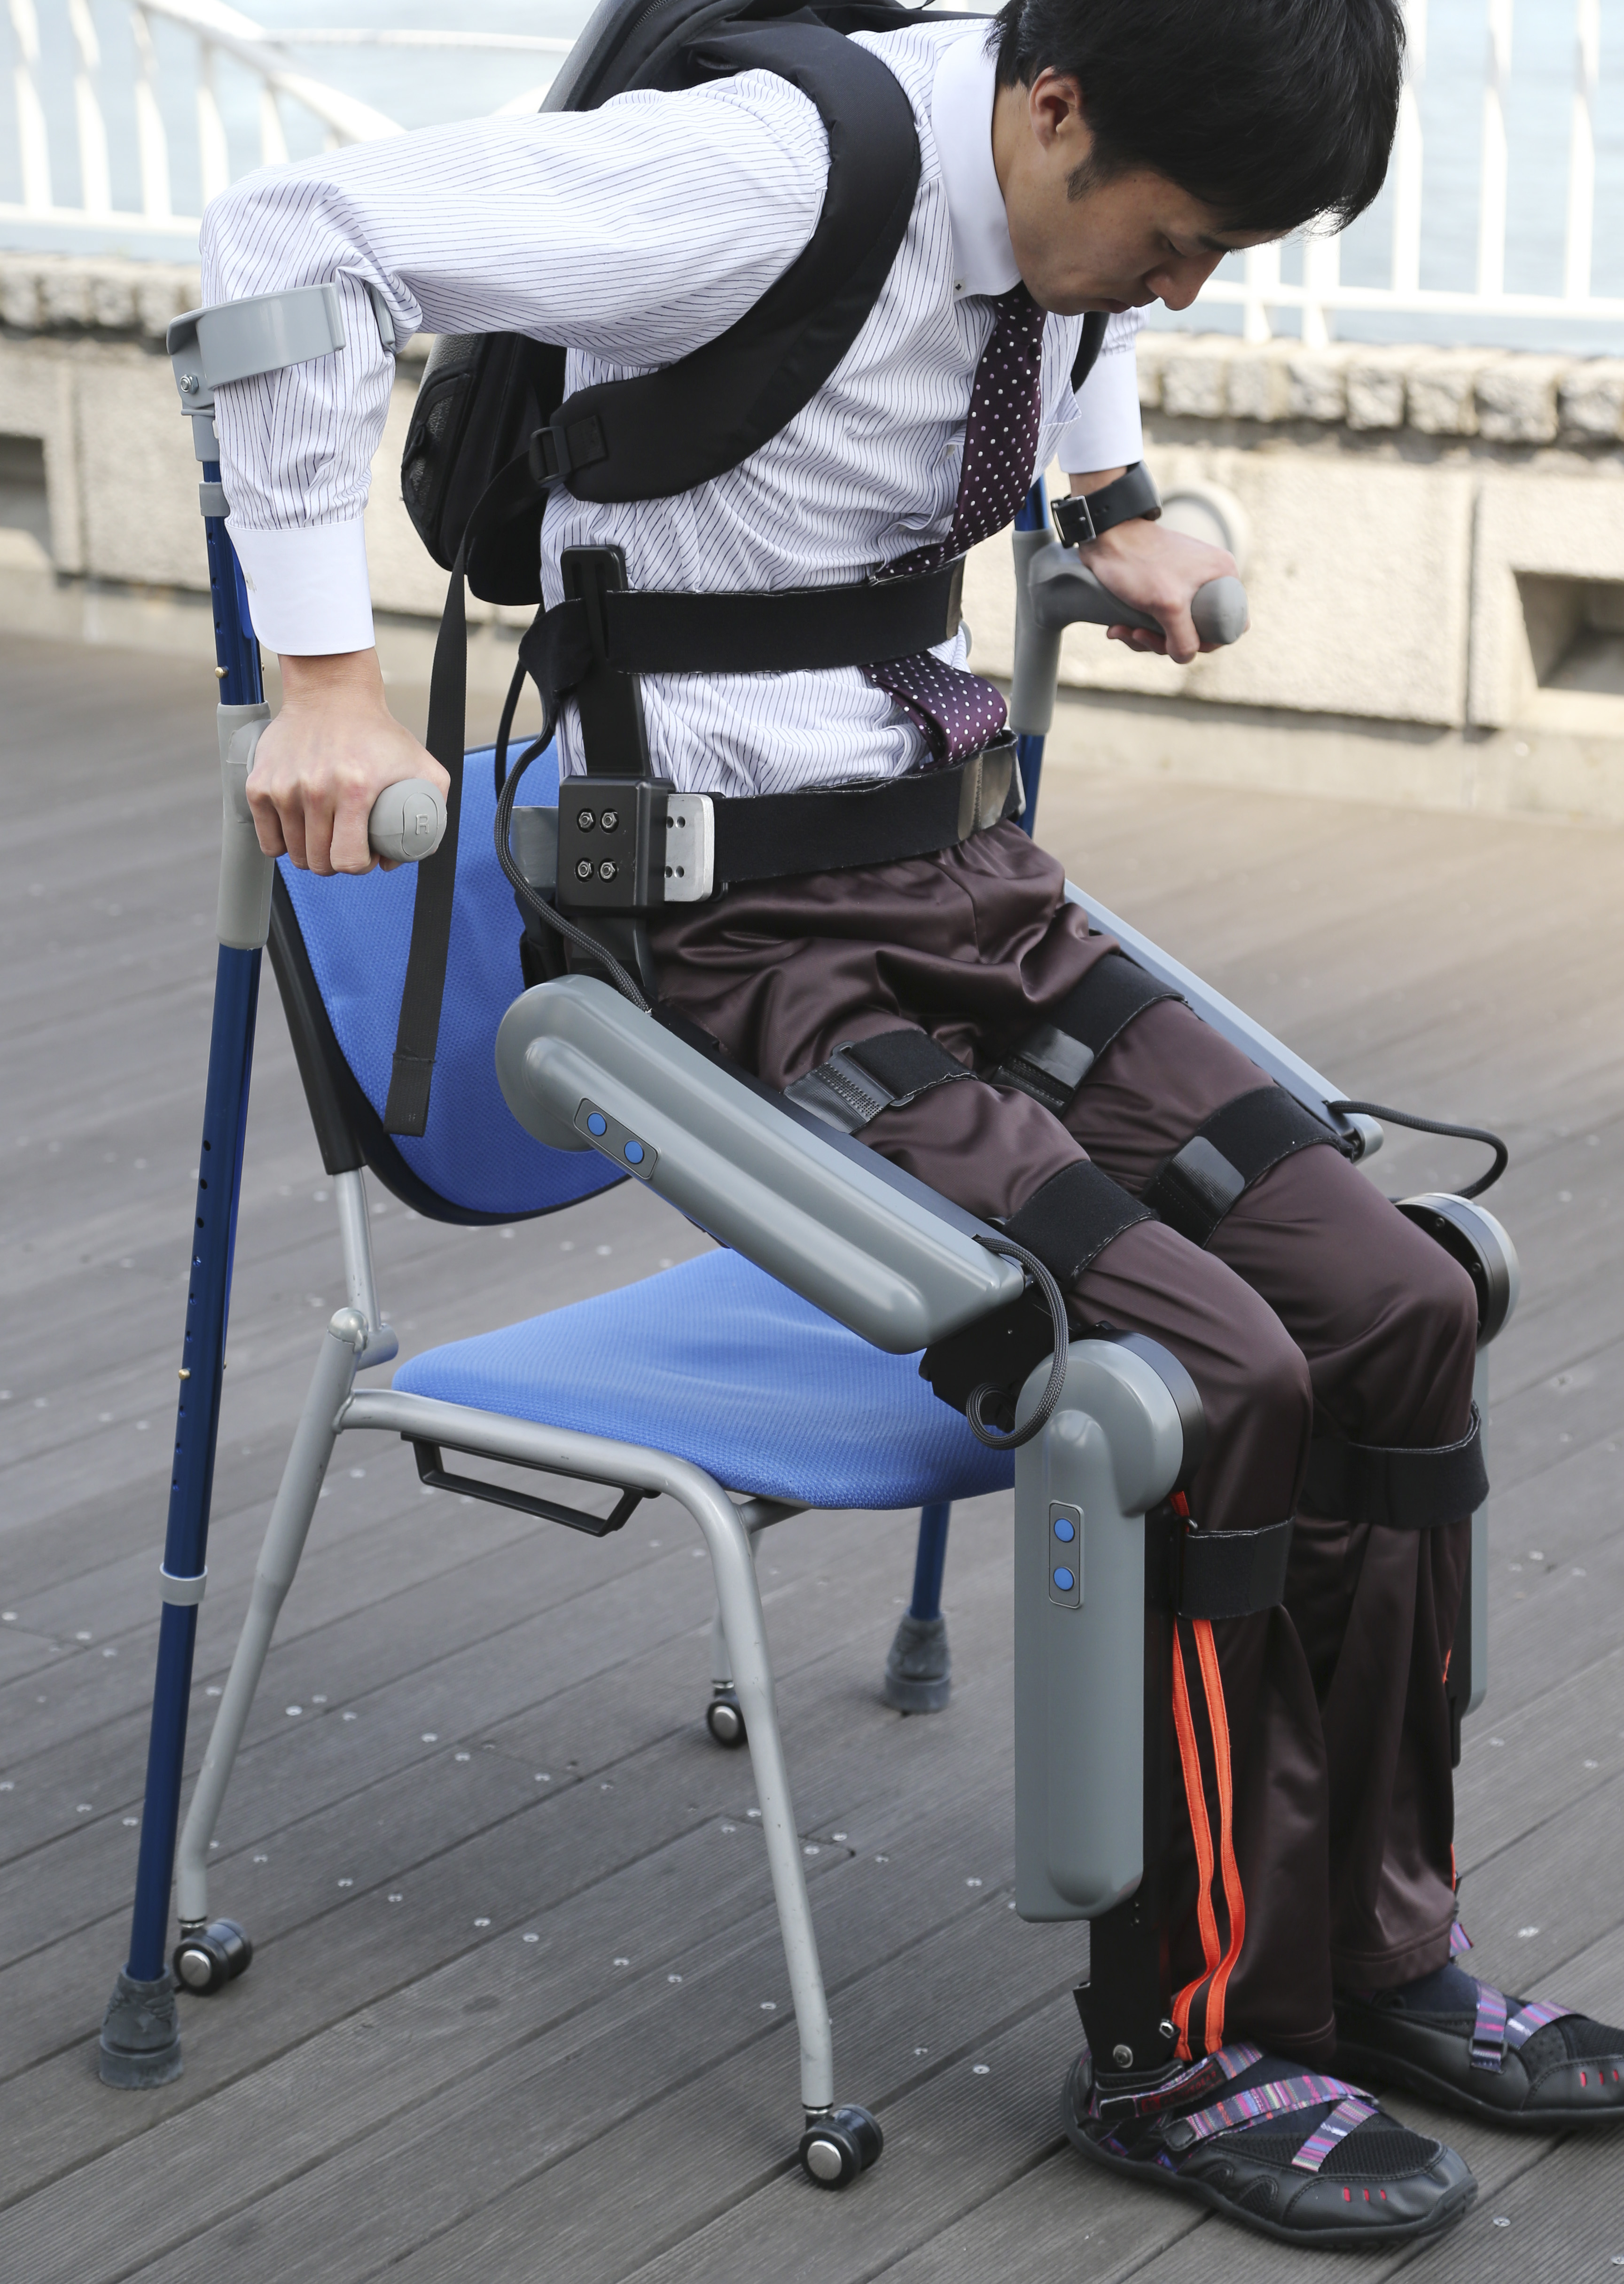 chair helps you stand up danish modern chairs exoskeleton that paralyzed walk faces bureaucratic